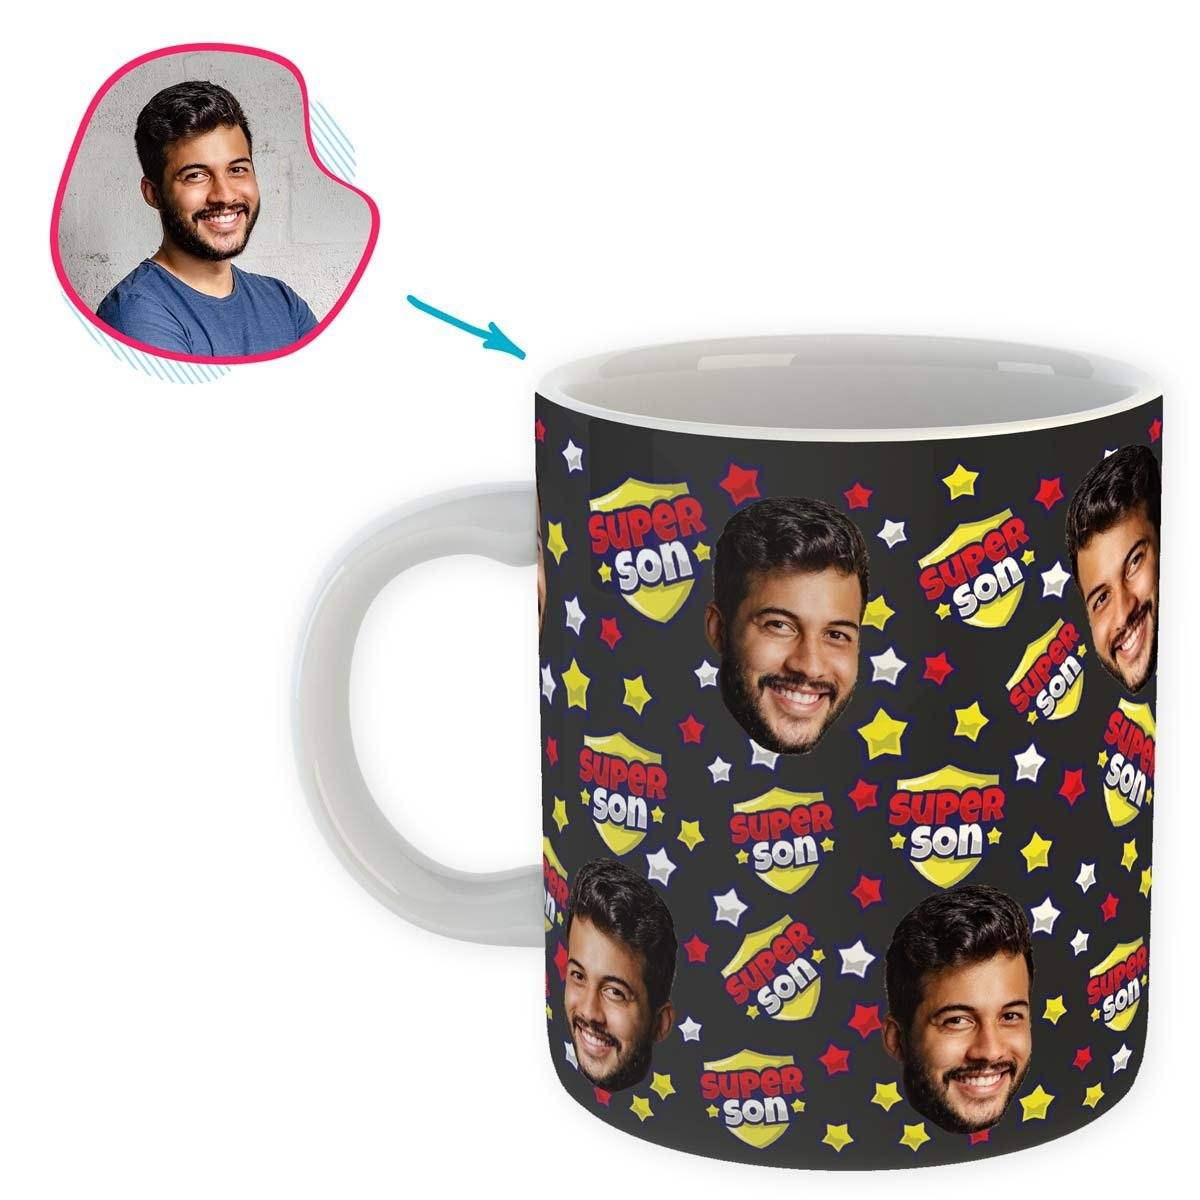 dark Super Son mug personalized with photo of face printed on it